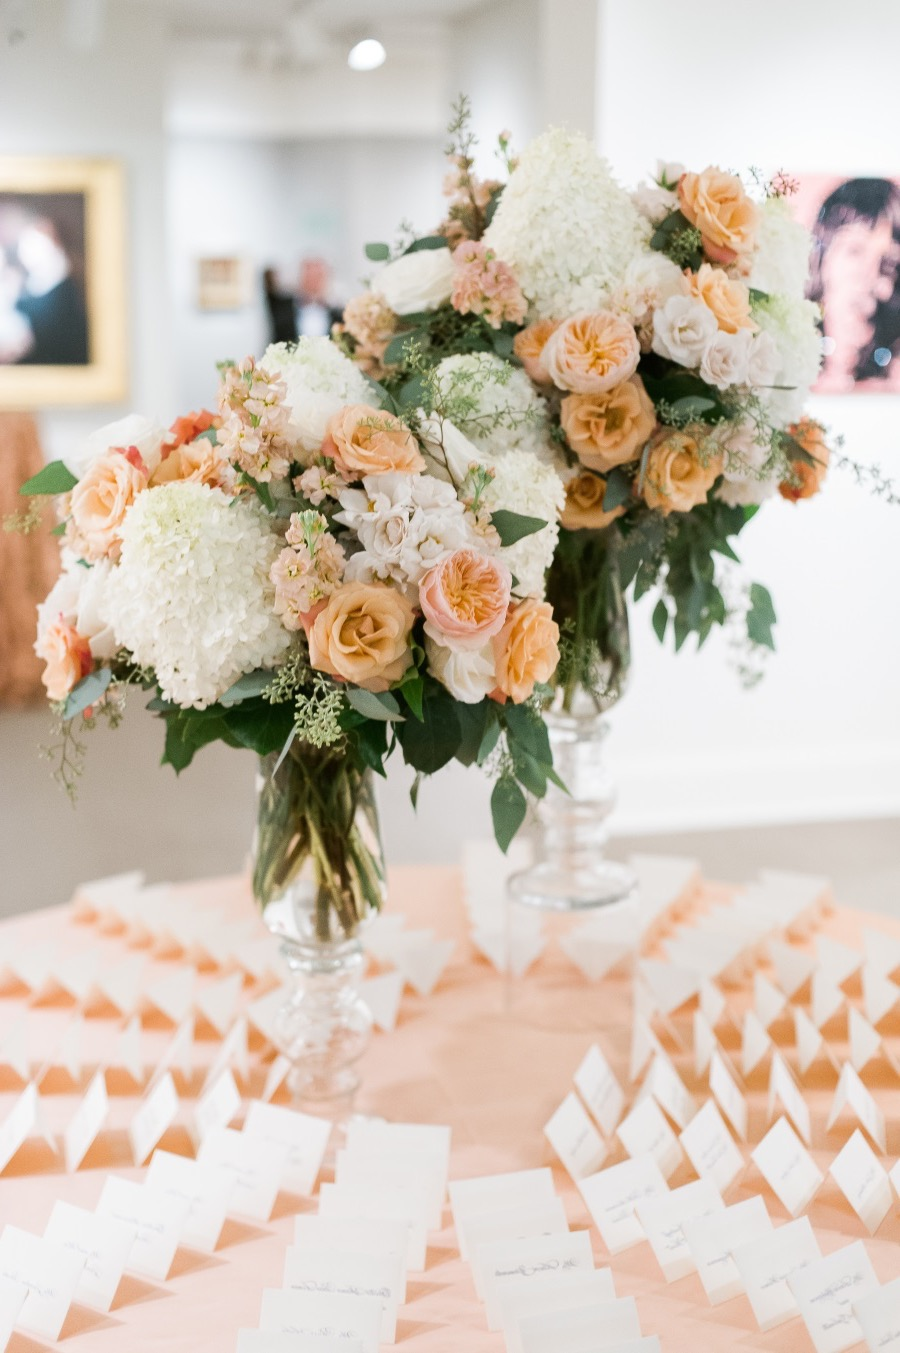 Elegant Summer Wedding Reception Centerpieces (Image 5 of 20)